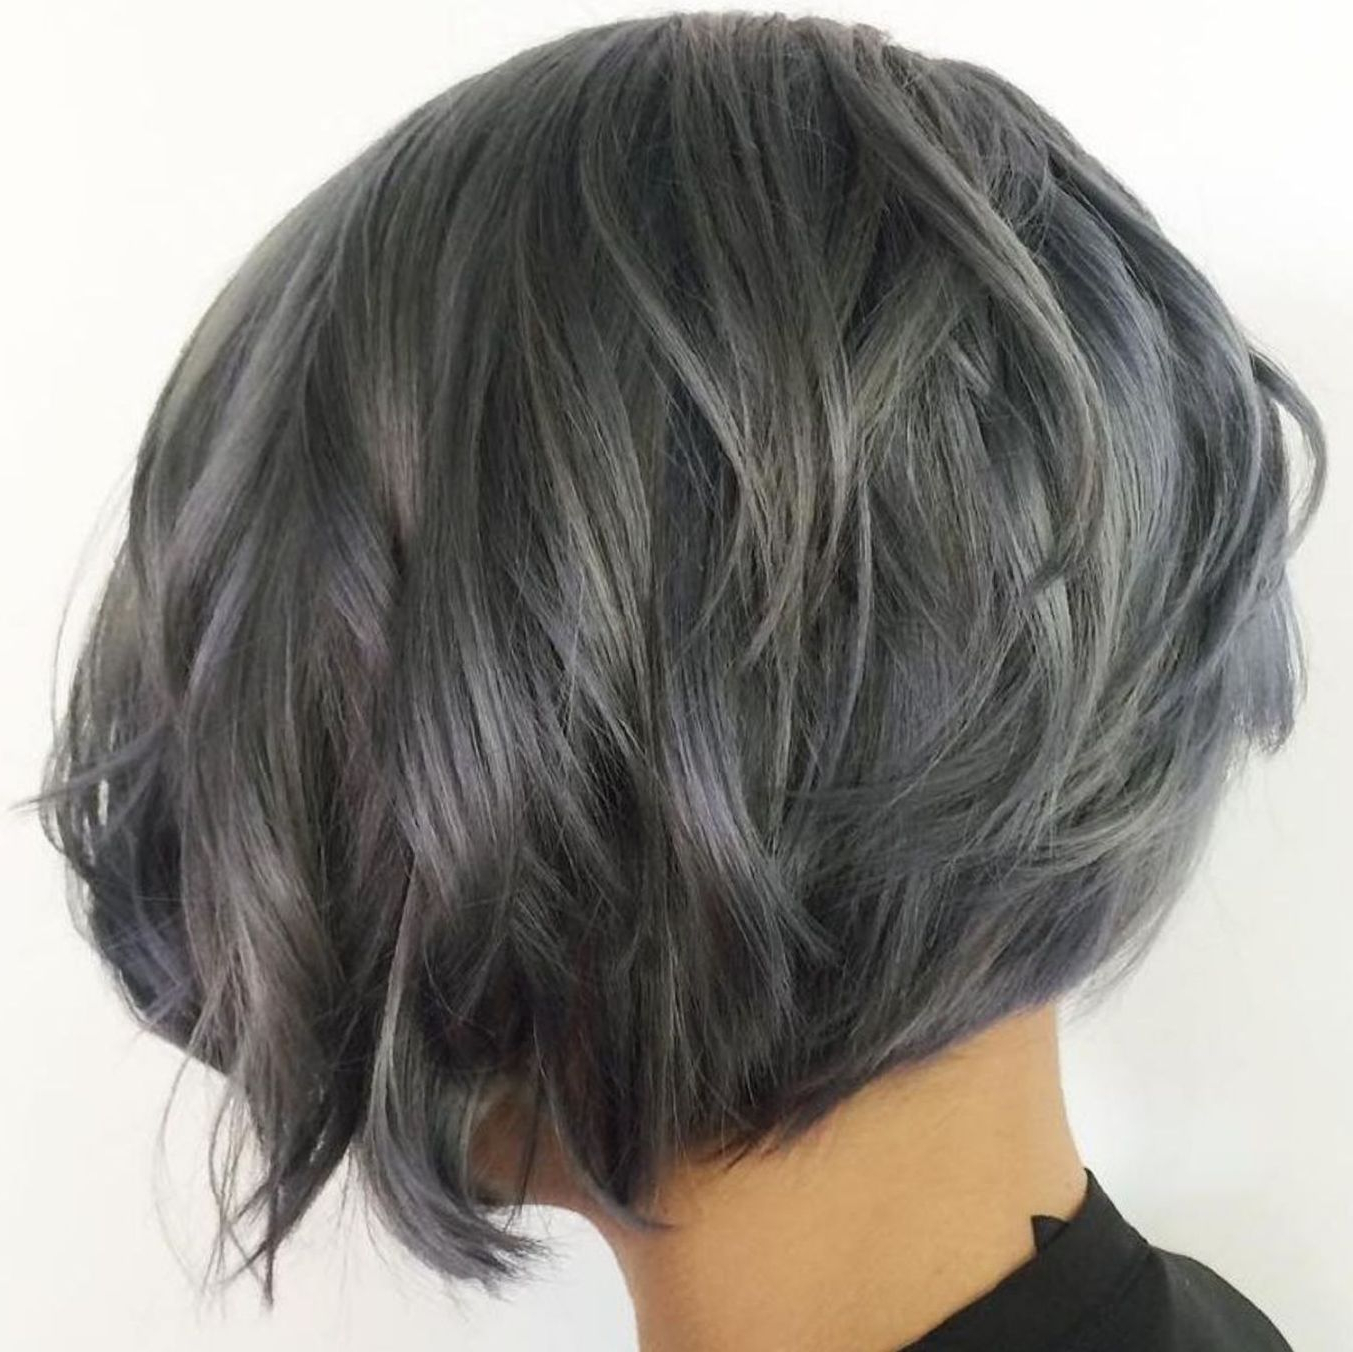 60 Short Shag Hairstyles That You Simply Can't Miss In 2019 Regarding Matte Shaggy Bob Hairstyles (View 11 of 20)